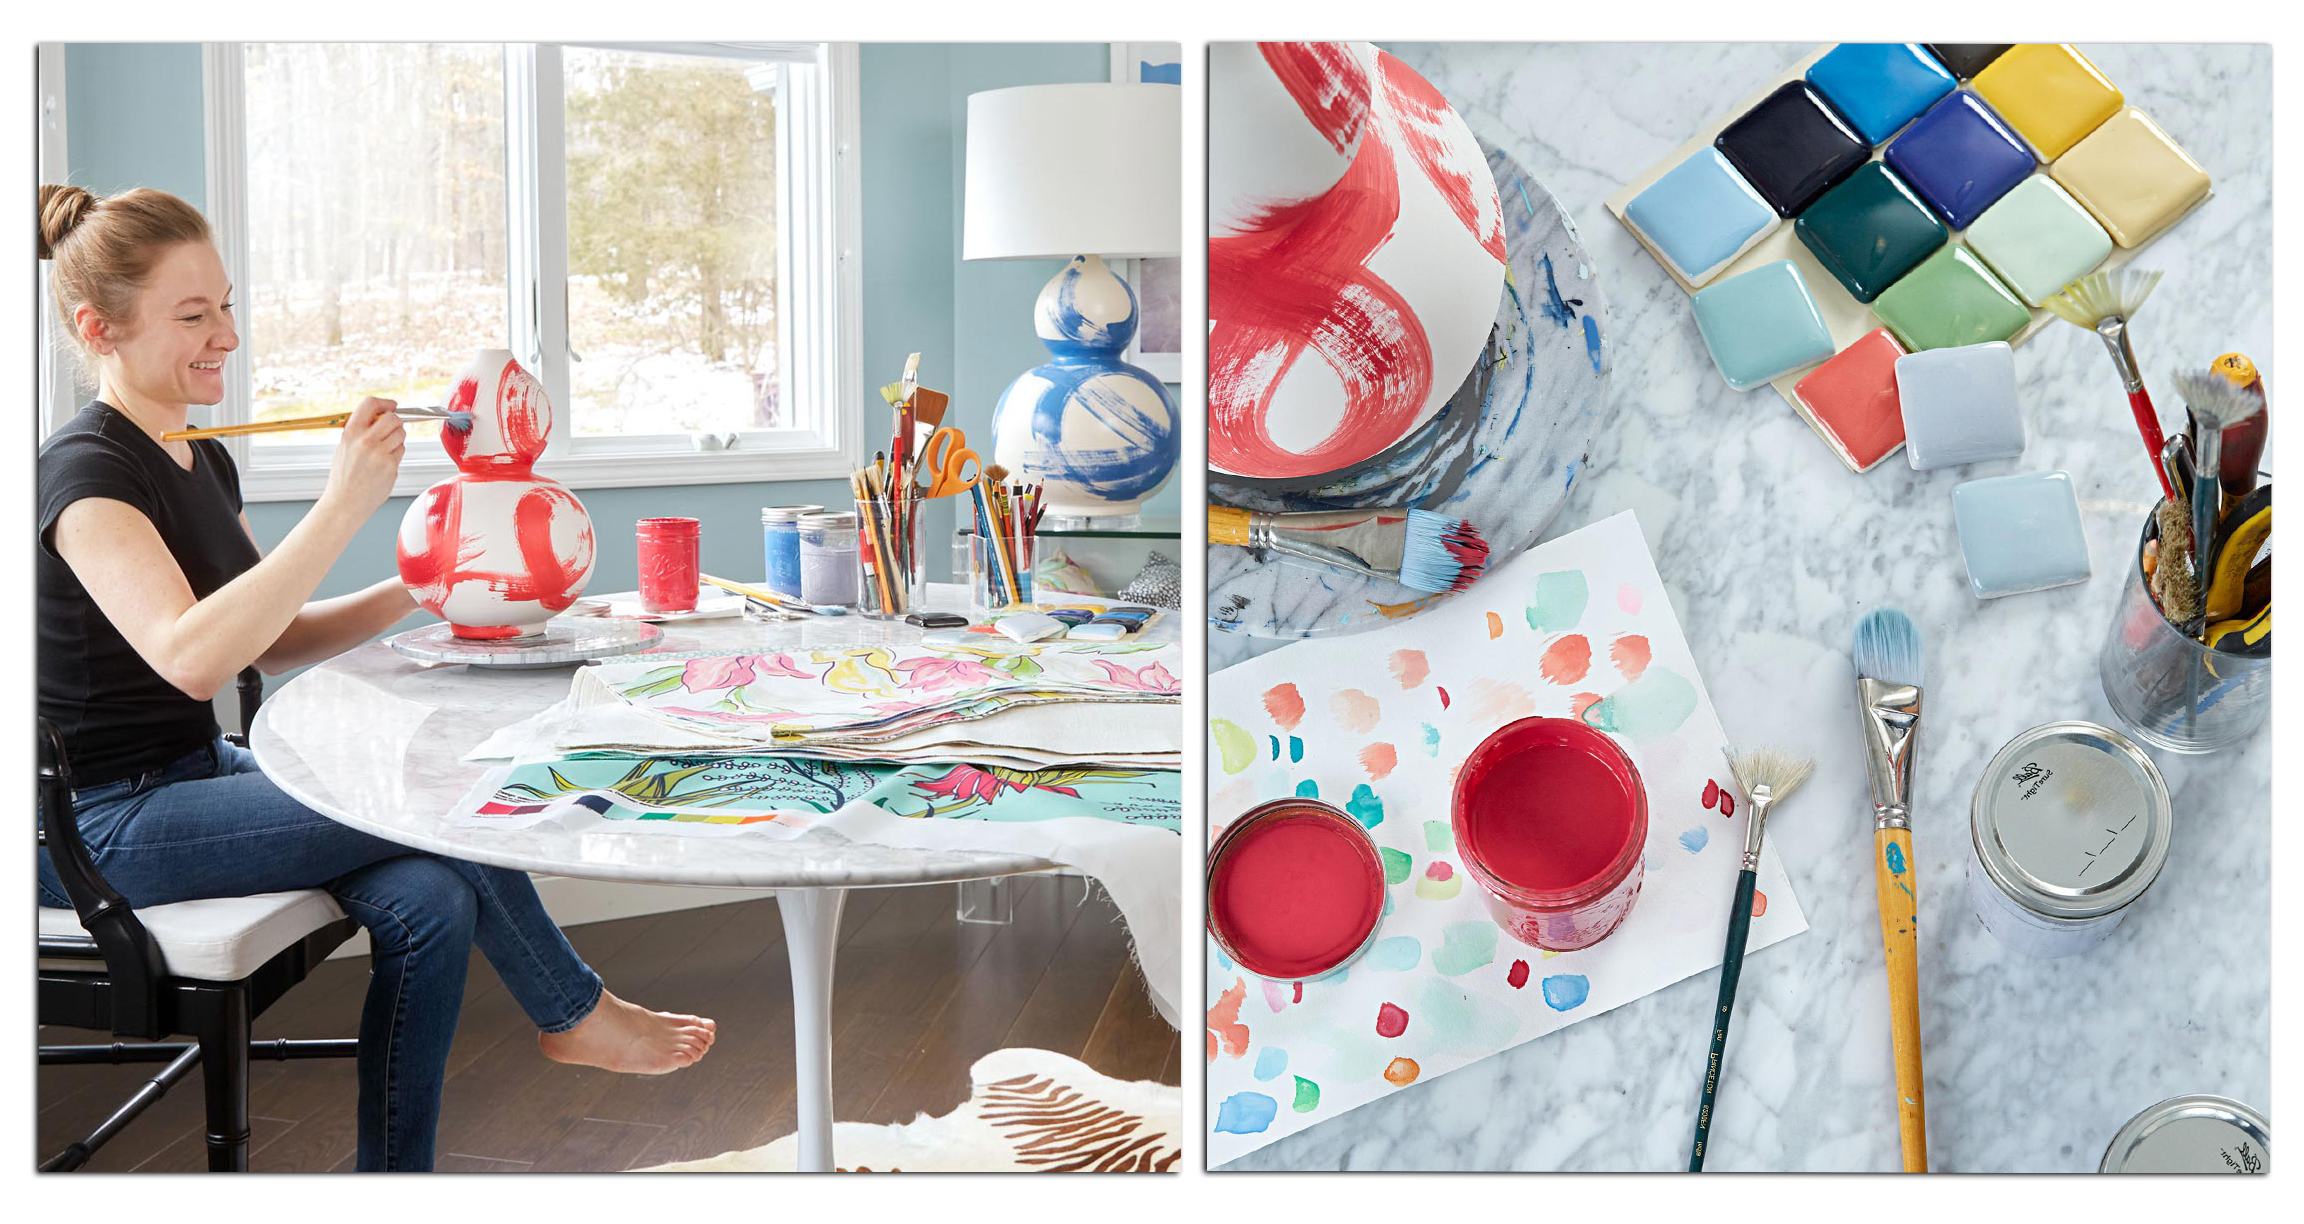 Designer  Jana Bek  in her home studio. Photography by  Adam Albright  for  Midwest Living .